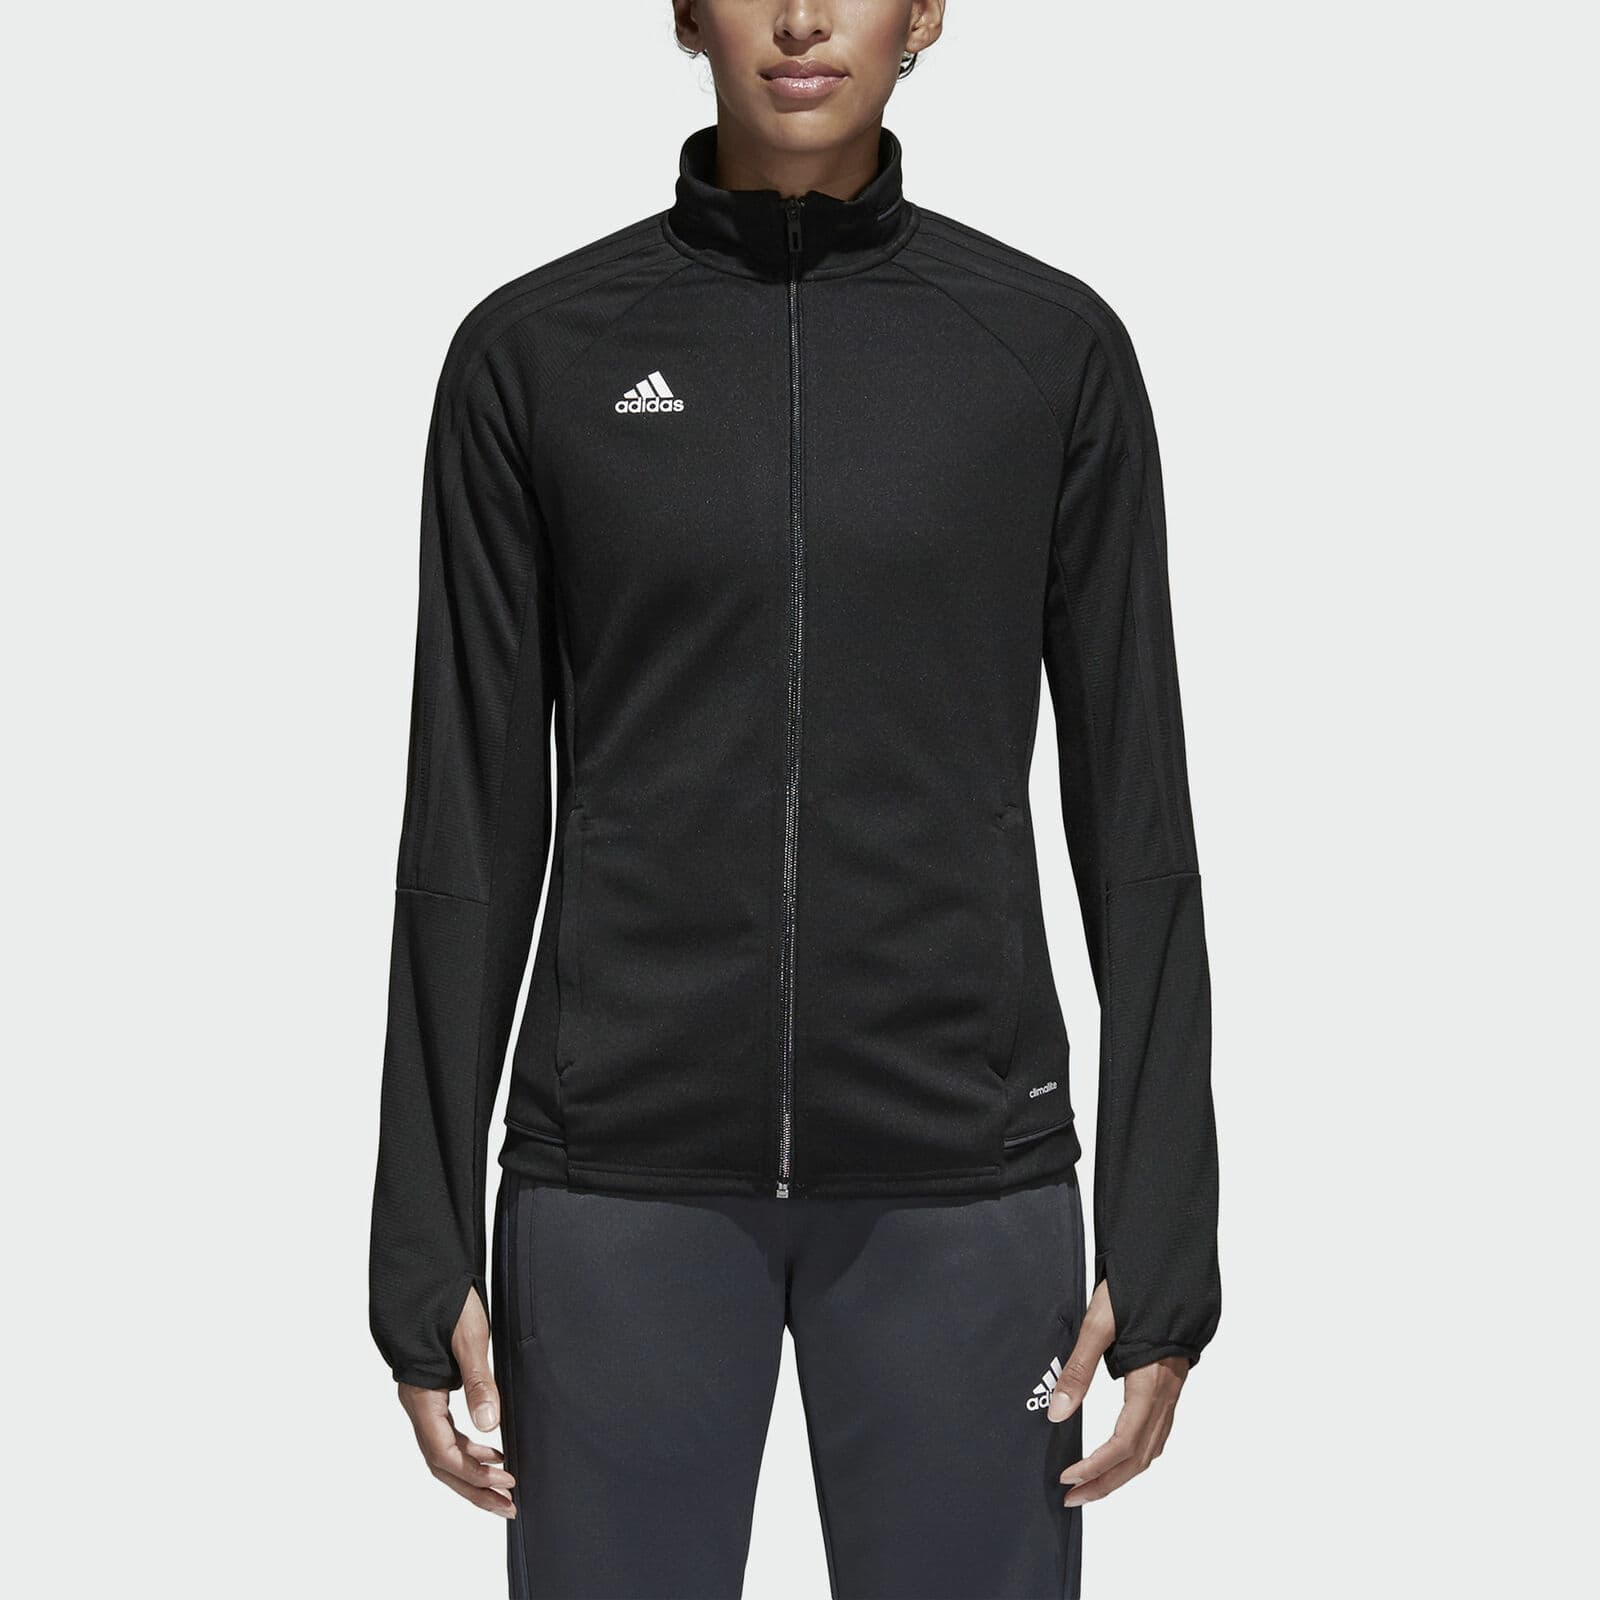 adidas Women's Tiro 17 Training Jacket $16, adidas Women's Core 18 Rain Jacket $20, More + free shipping